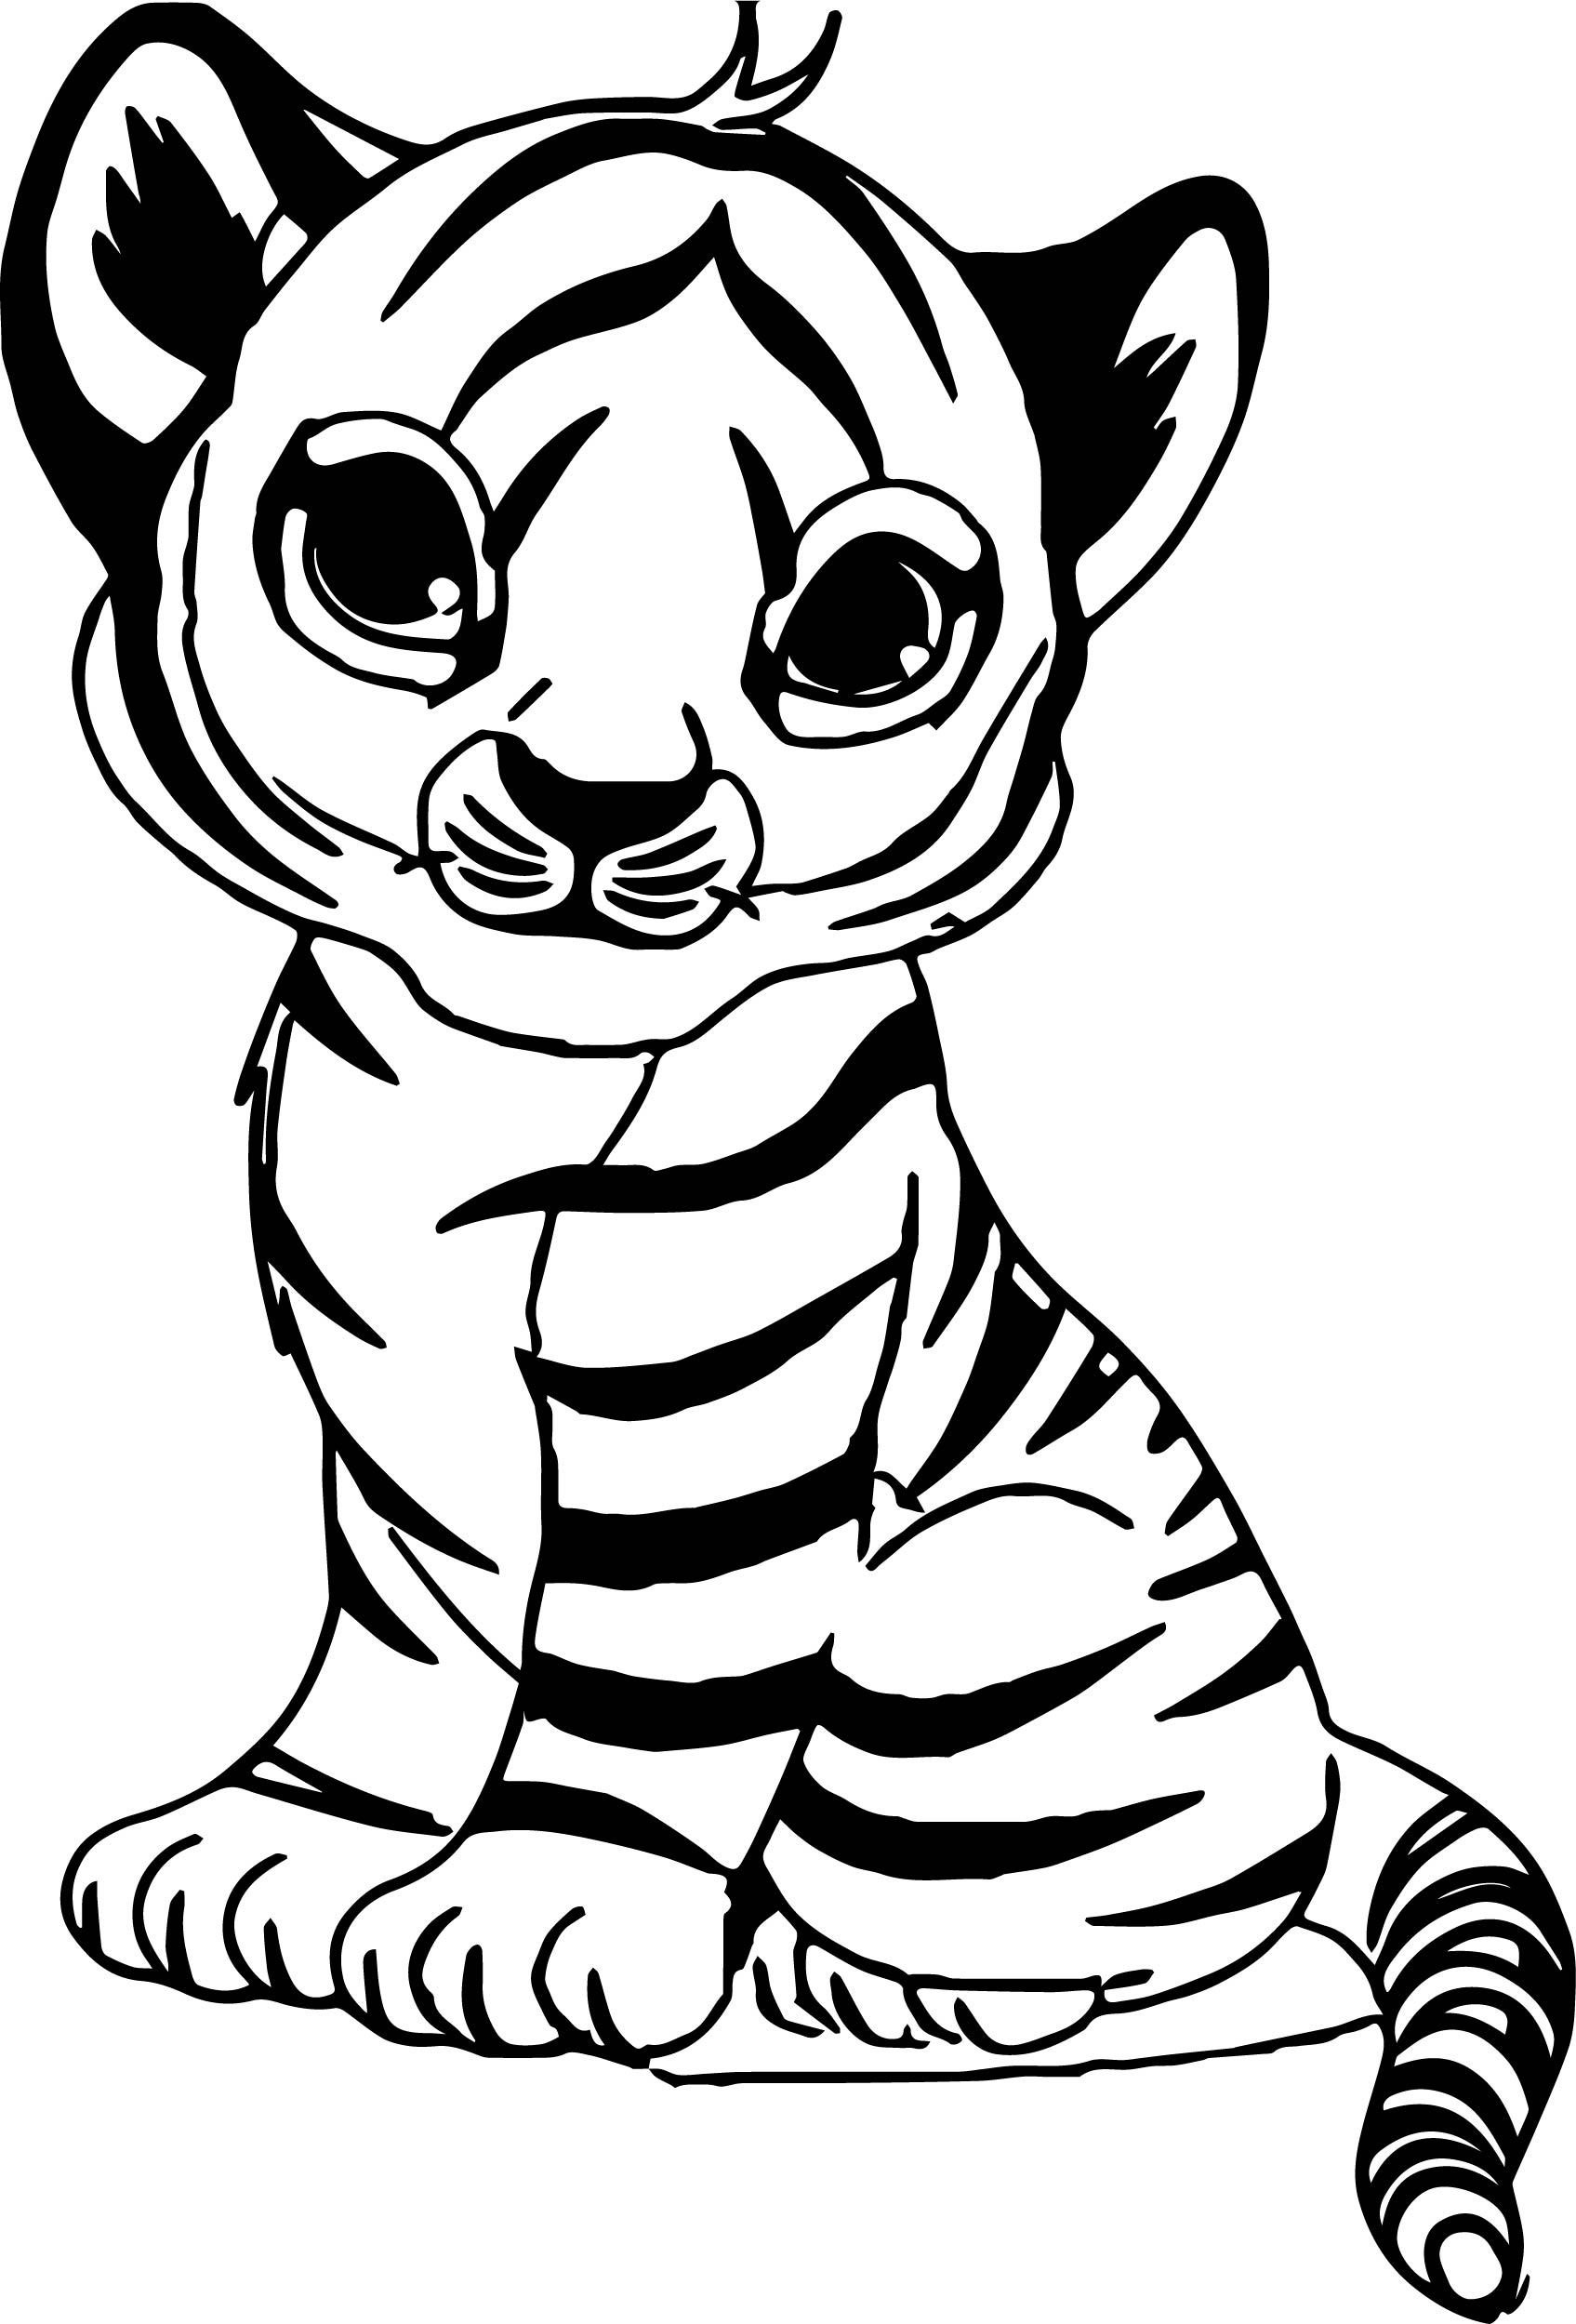 1695x2499 Edge Coloring Pages Of Tigers Tiger Page